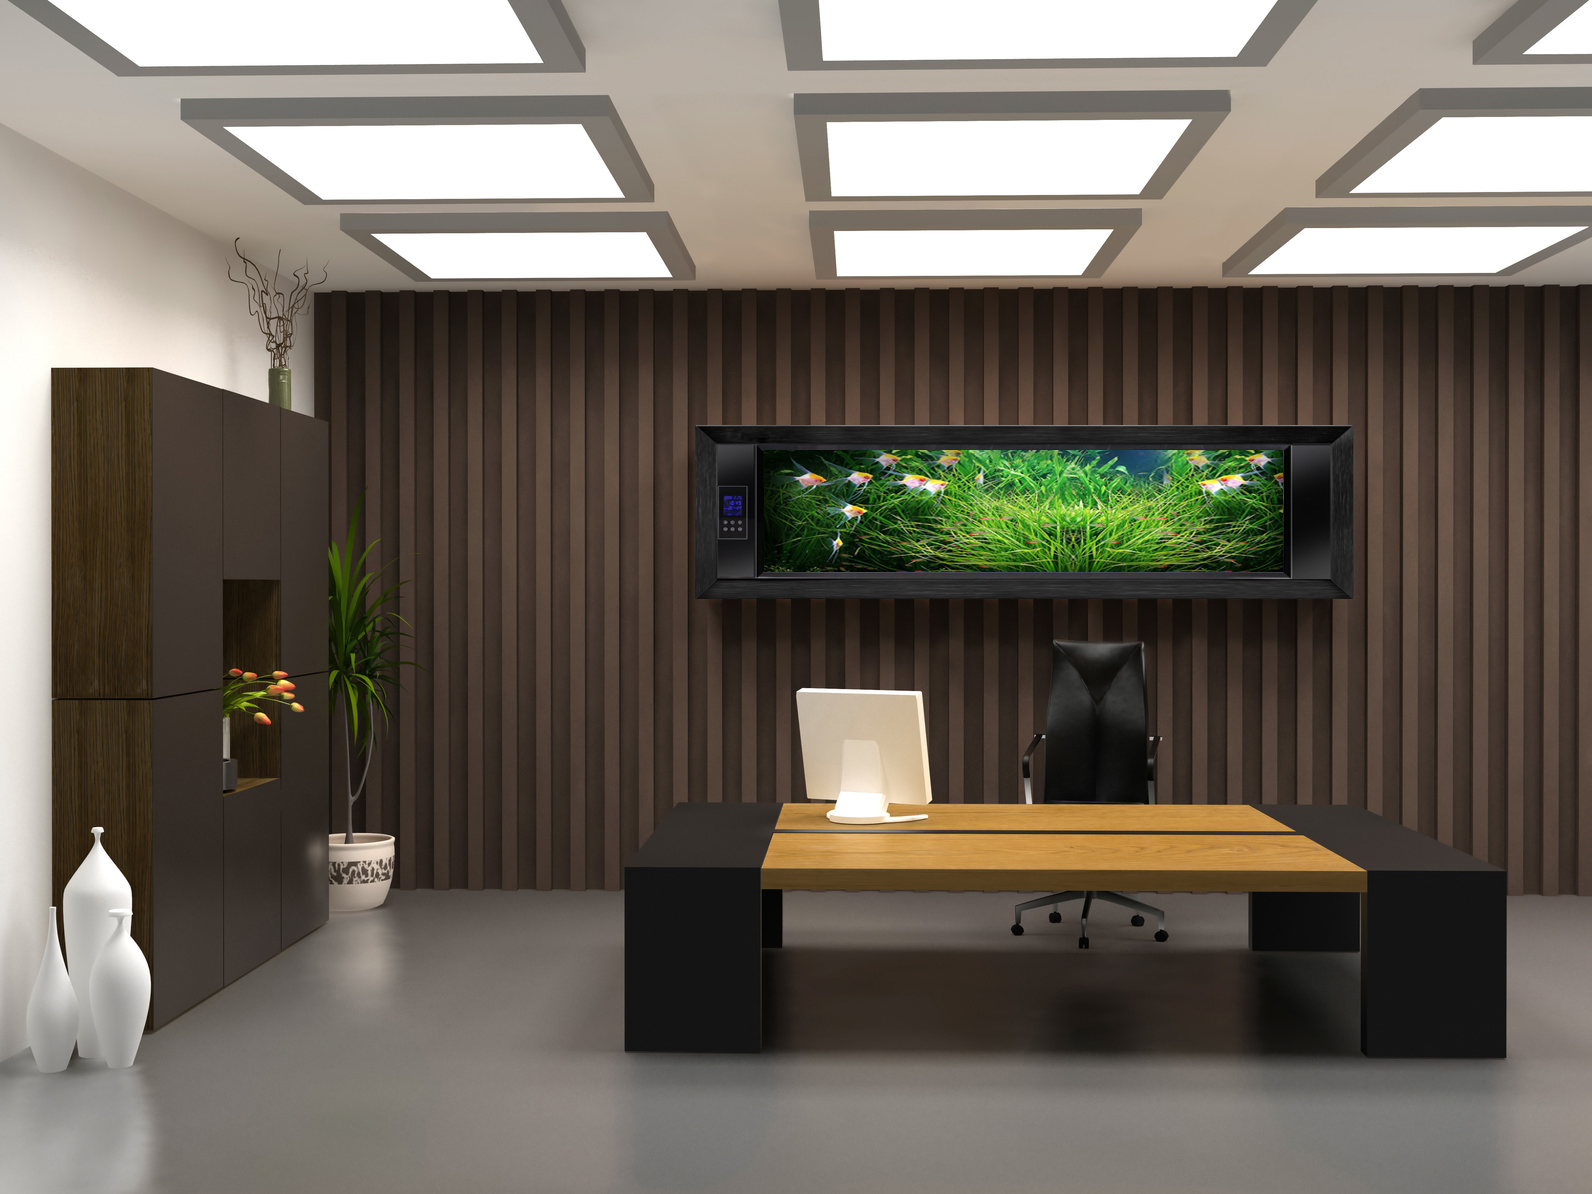 Elegant ceo office design bellisima Modern home office design ideas